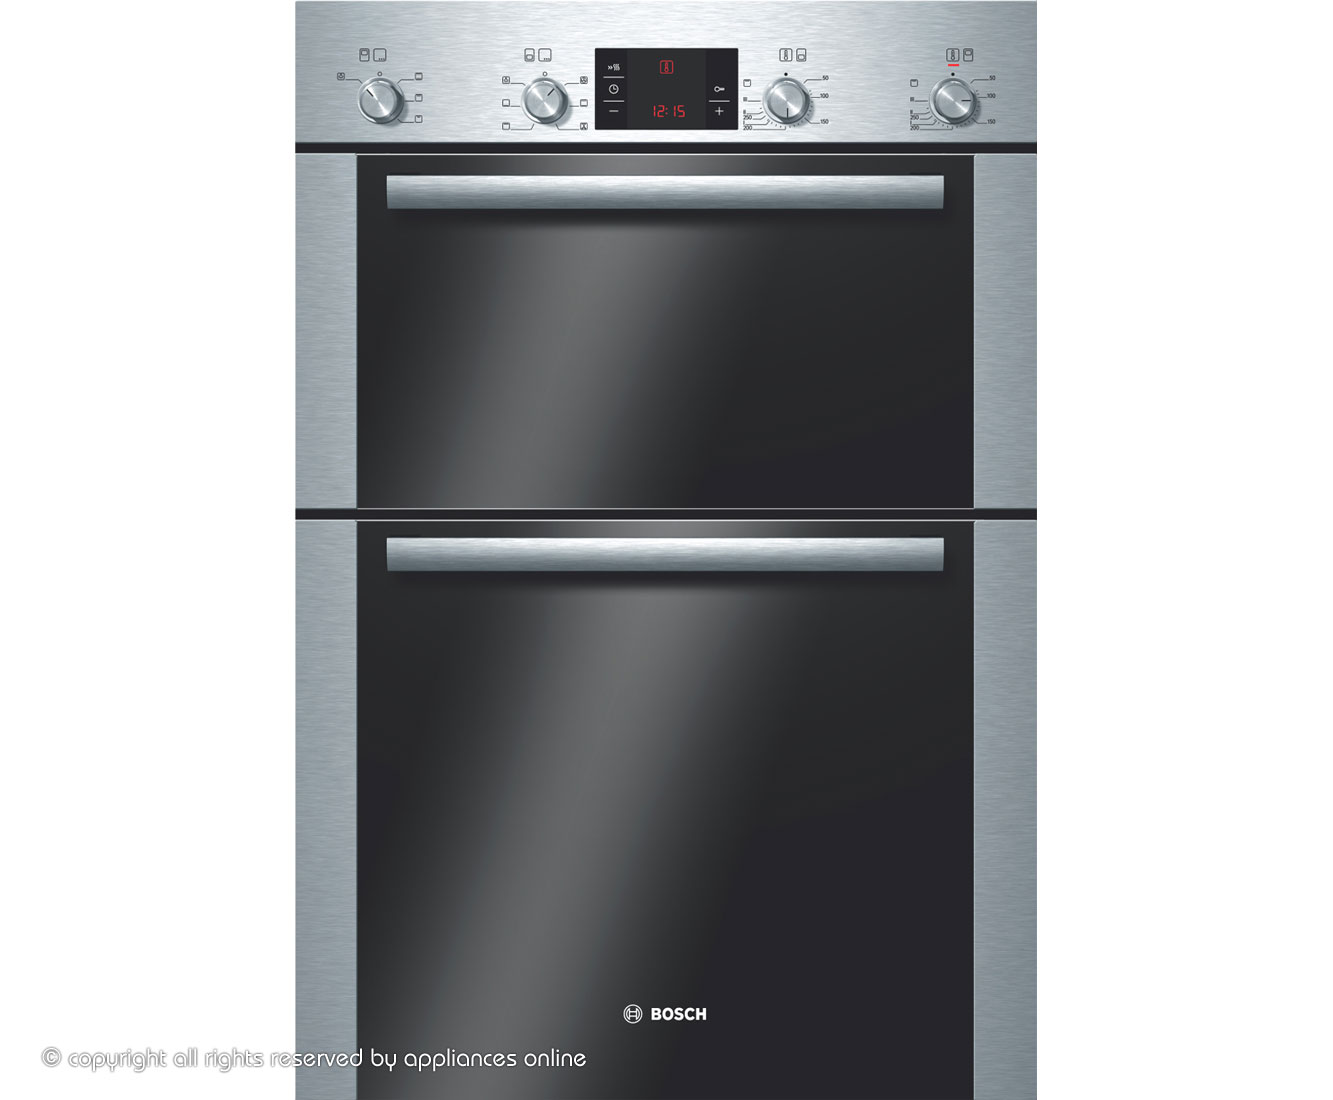 Bosch eye level double oven